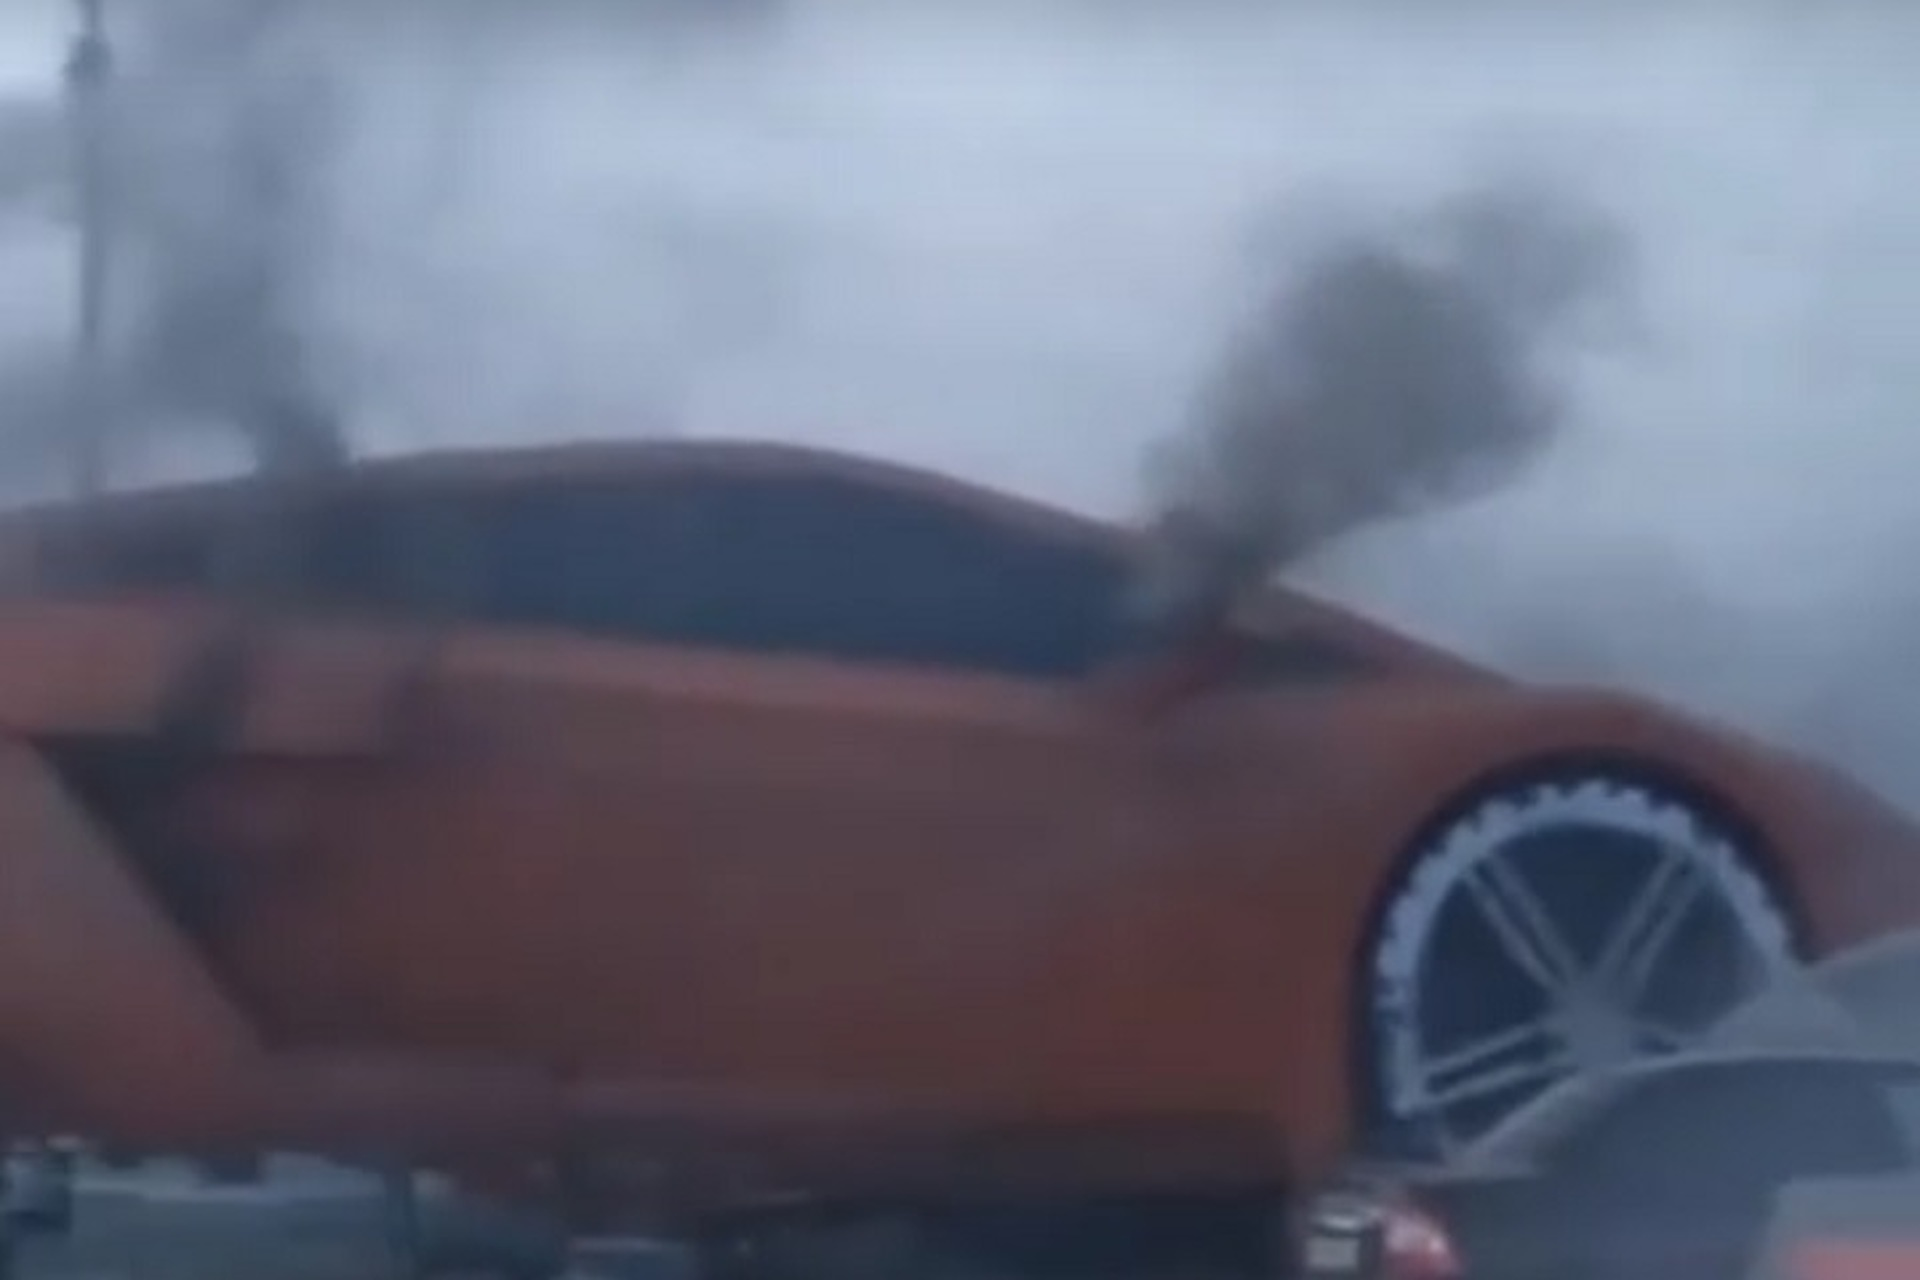 Watch a Giant Lamborghini Sculpture Catch Fire